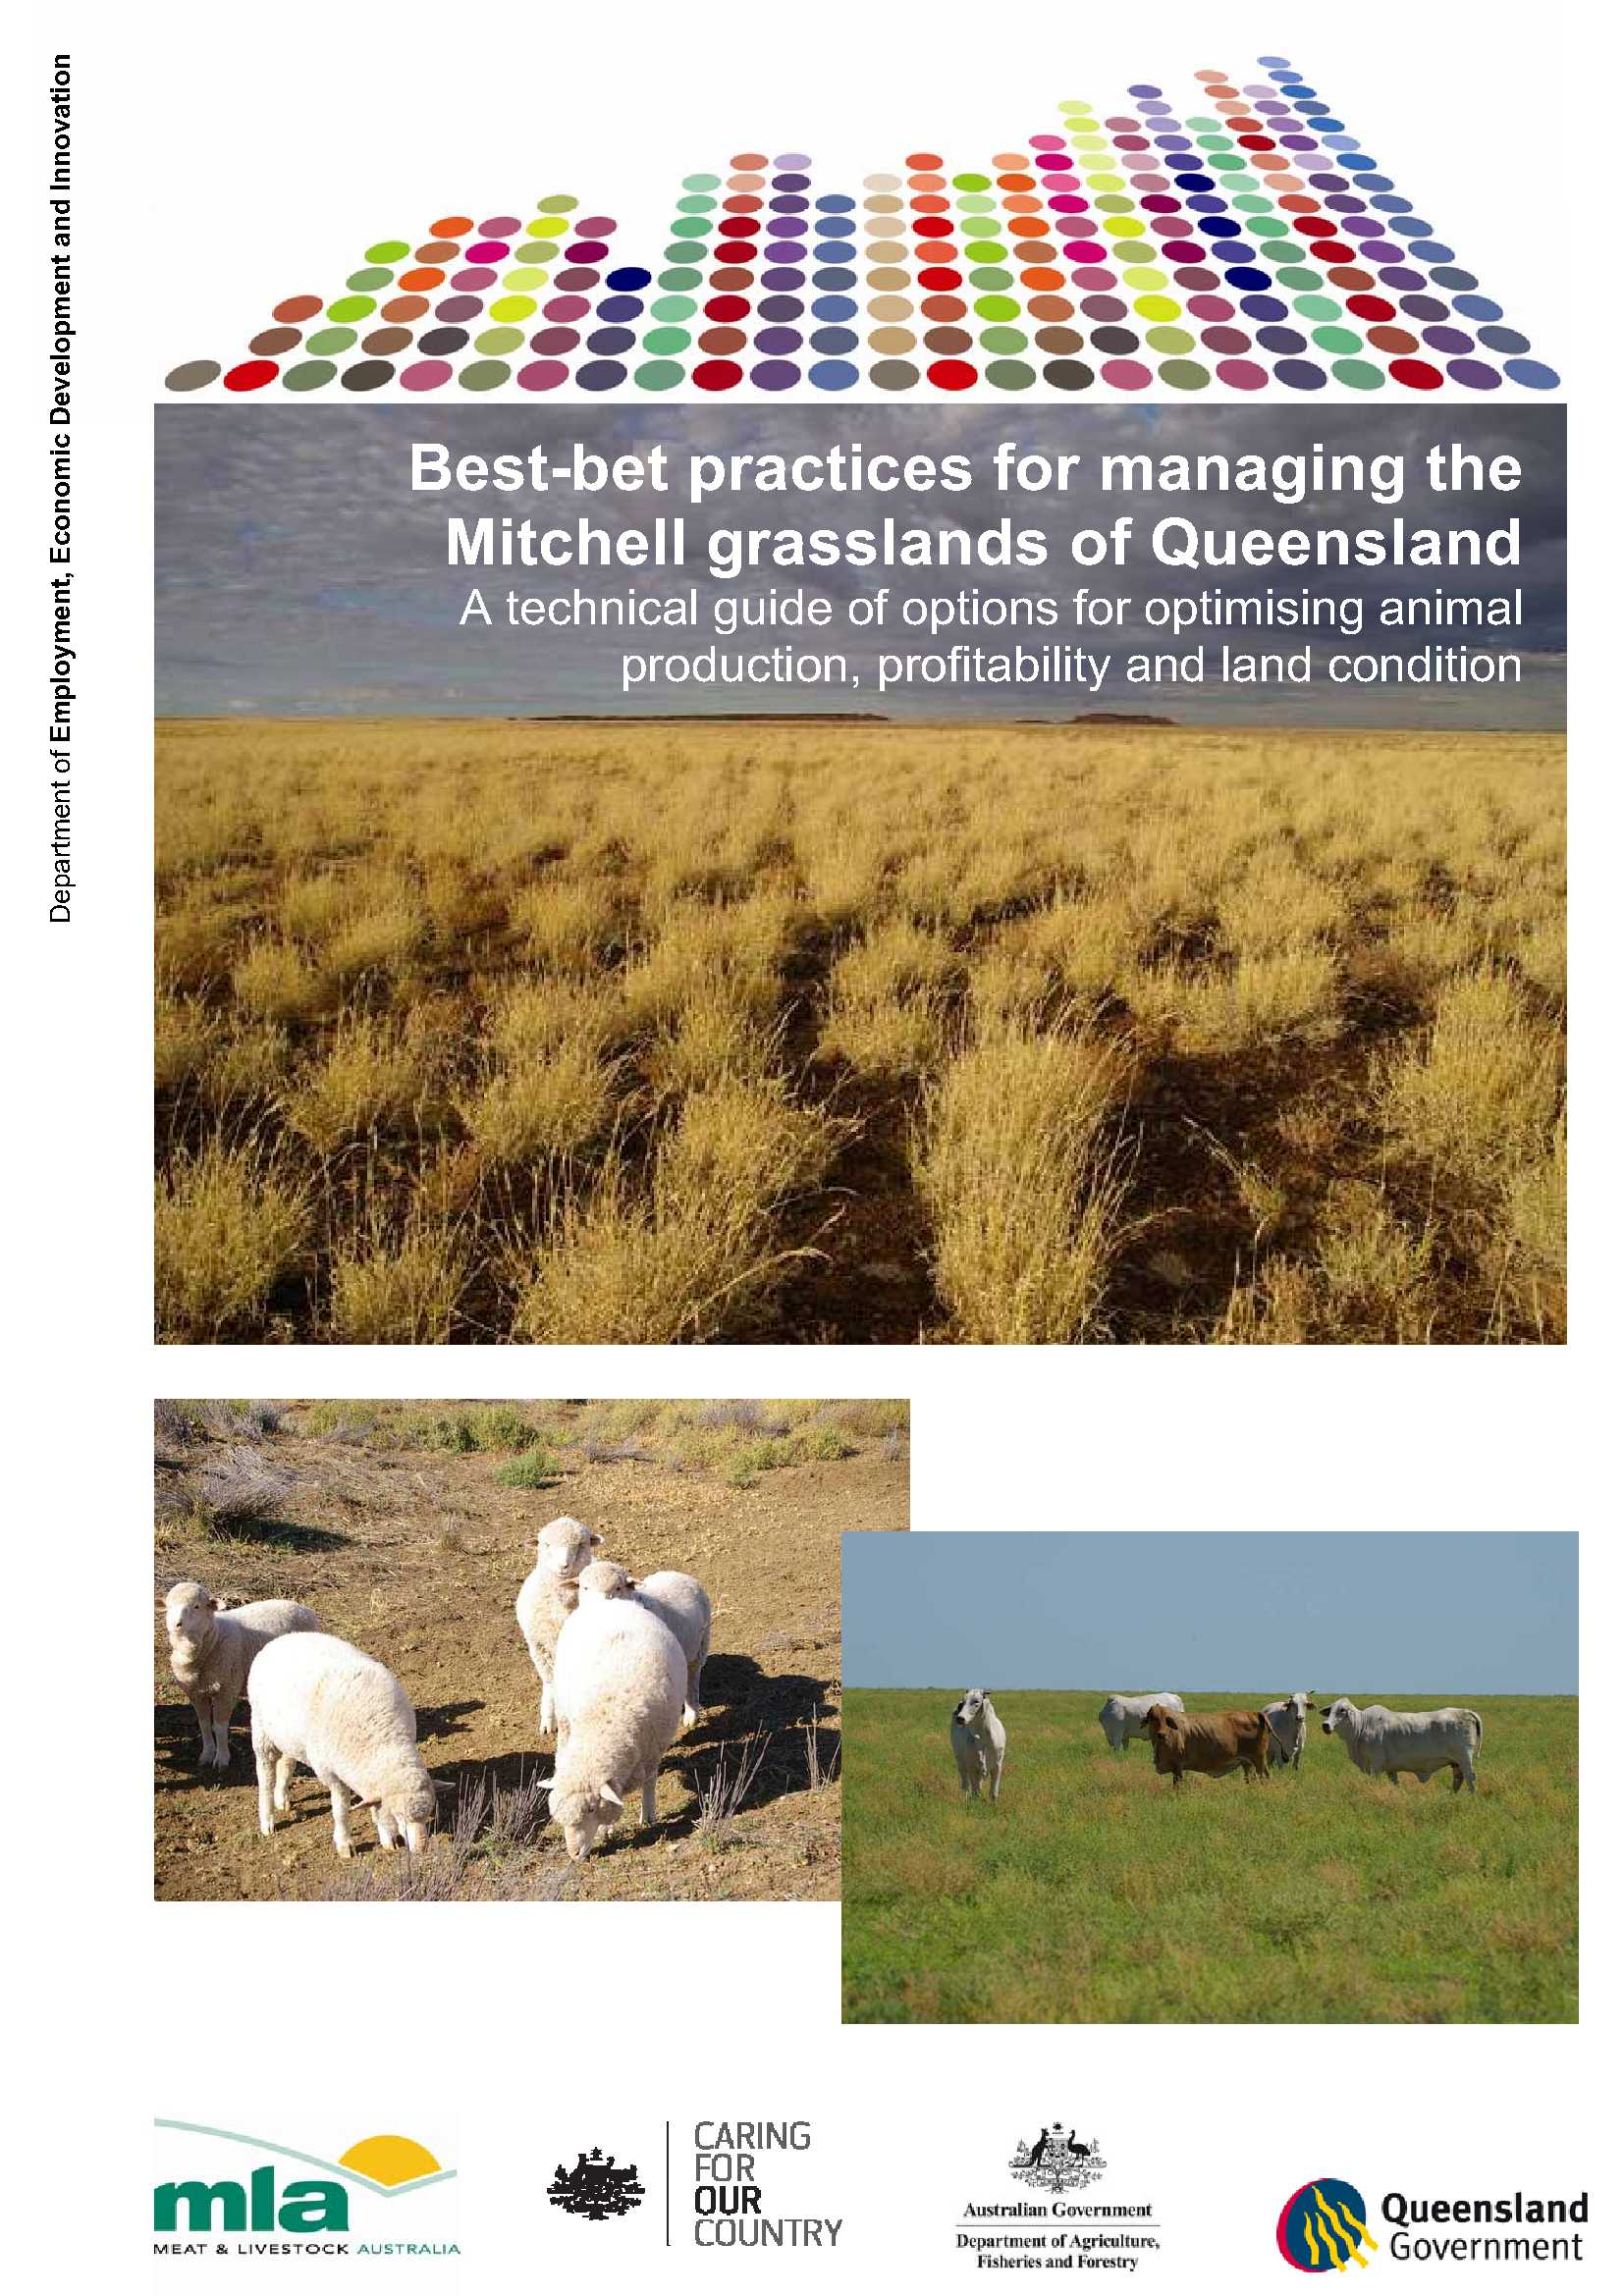 Cover page of the Best-bet practices for managing the Mitchell grasslands of Queensland